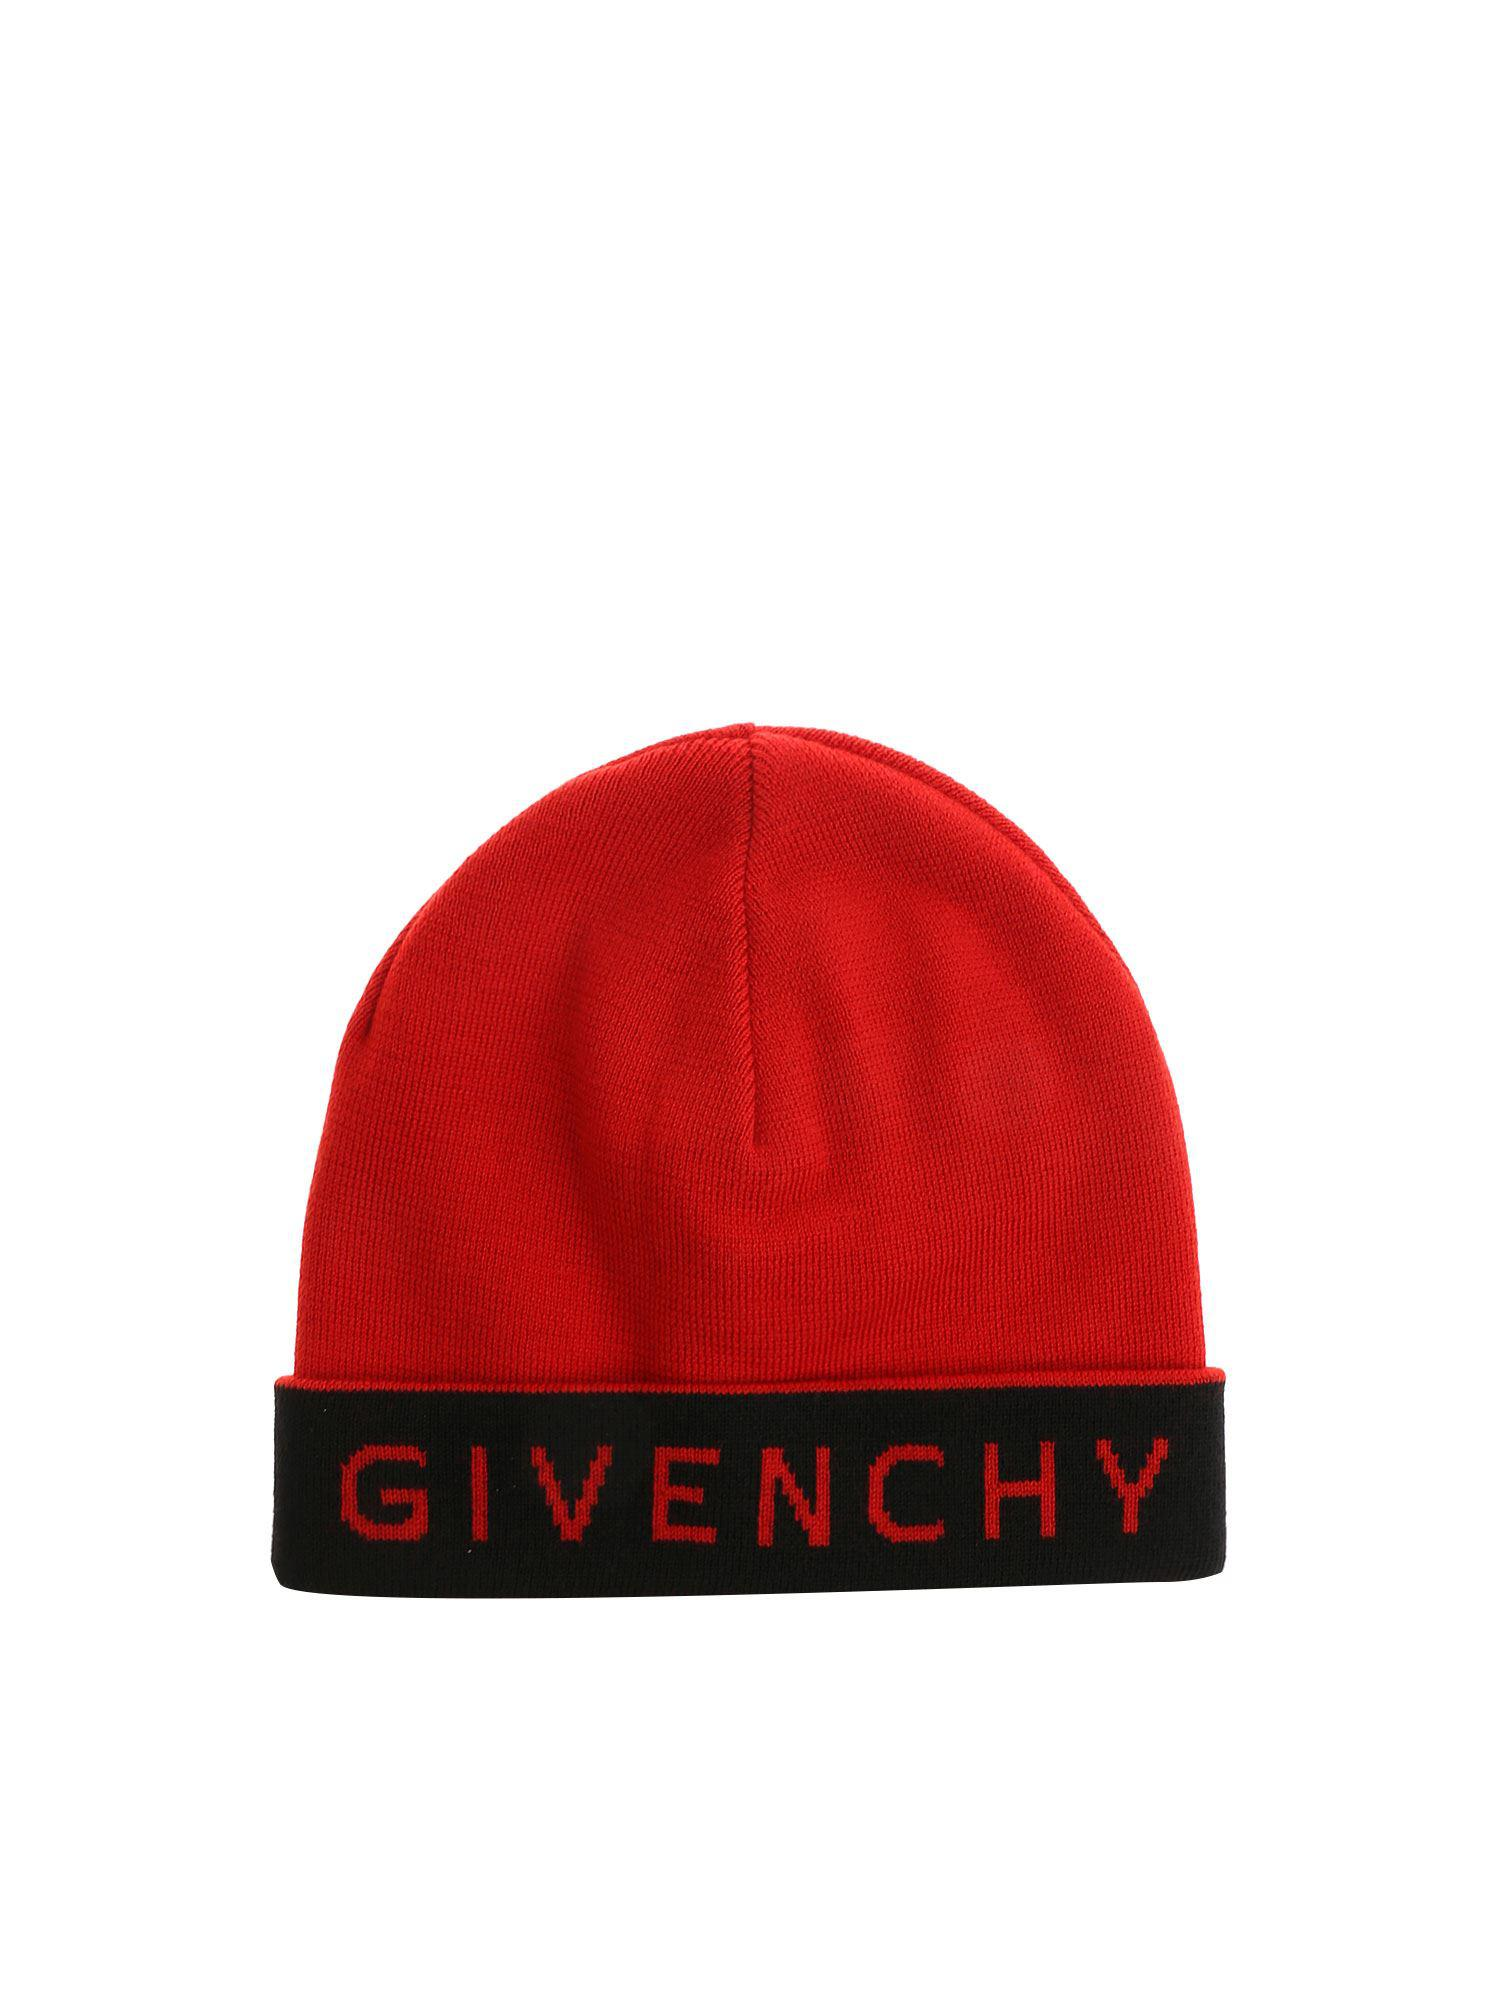 Lyst - Givenchy Logo Wool Beanie in Red for Men f825d91ac6ca